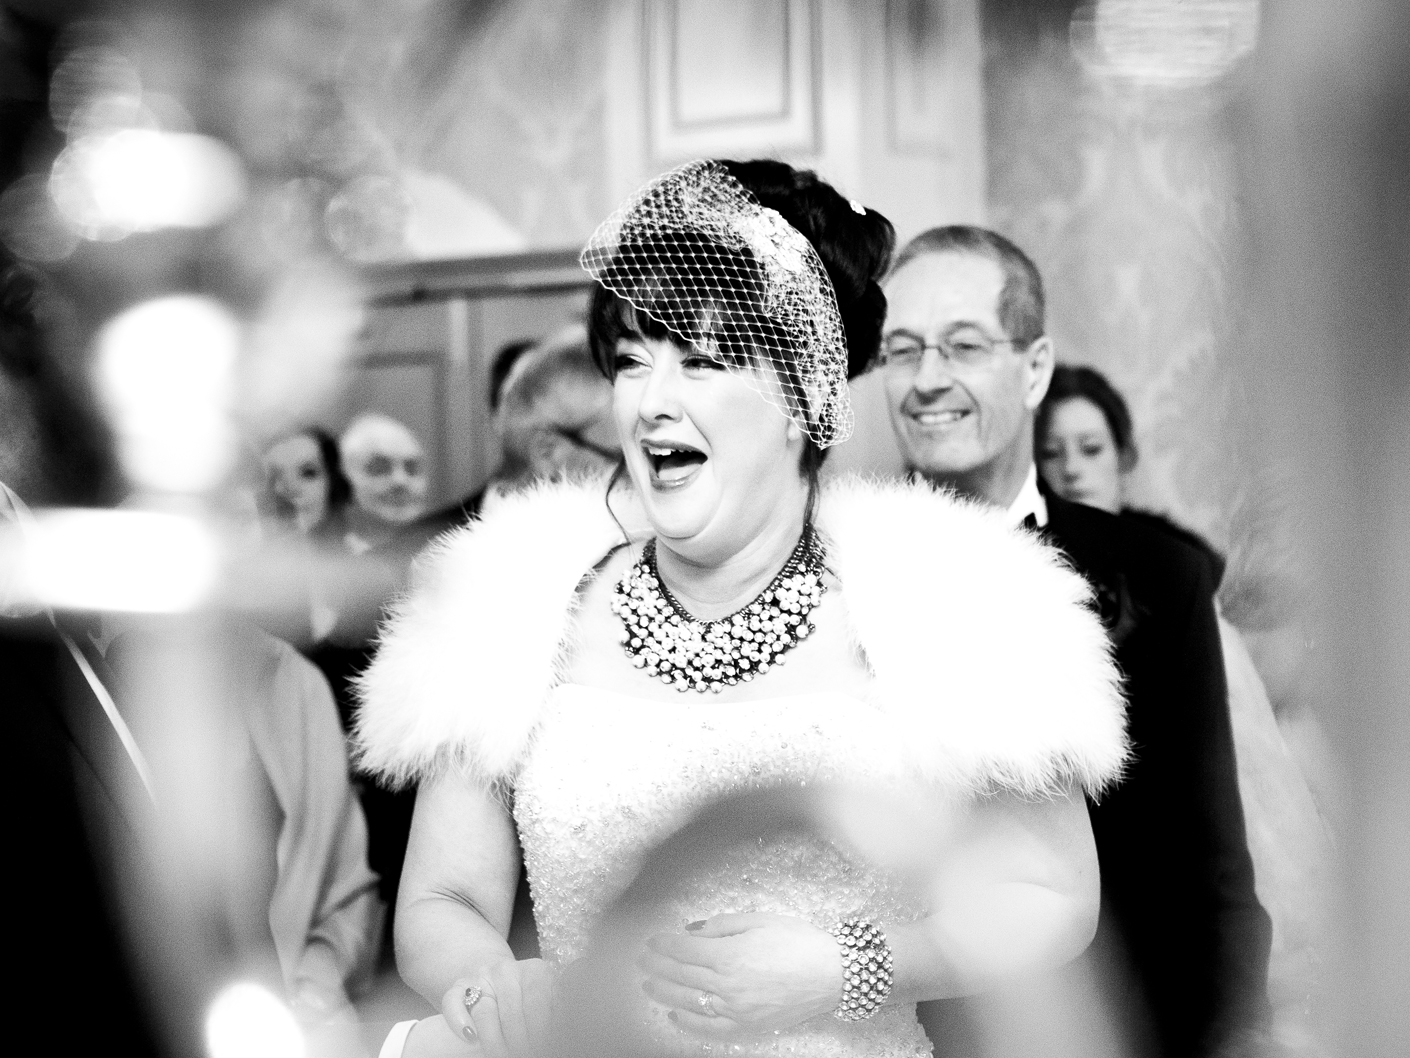 photography-of-the-civil-wedding-ceremony-at-mottram-hall-cheshire-north-west